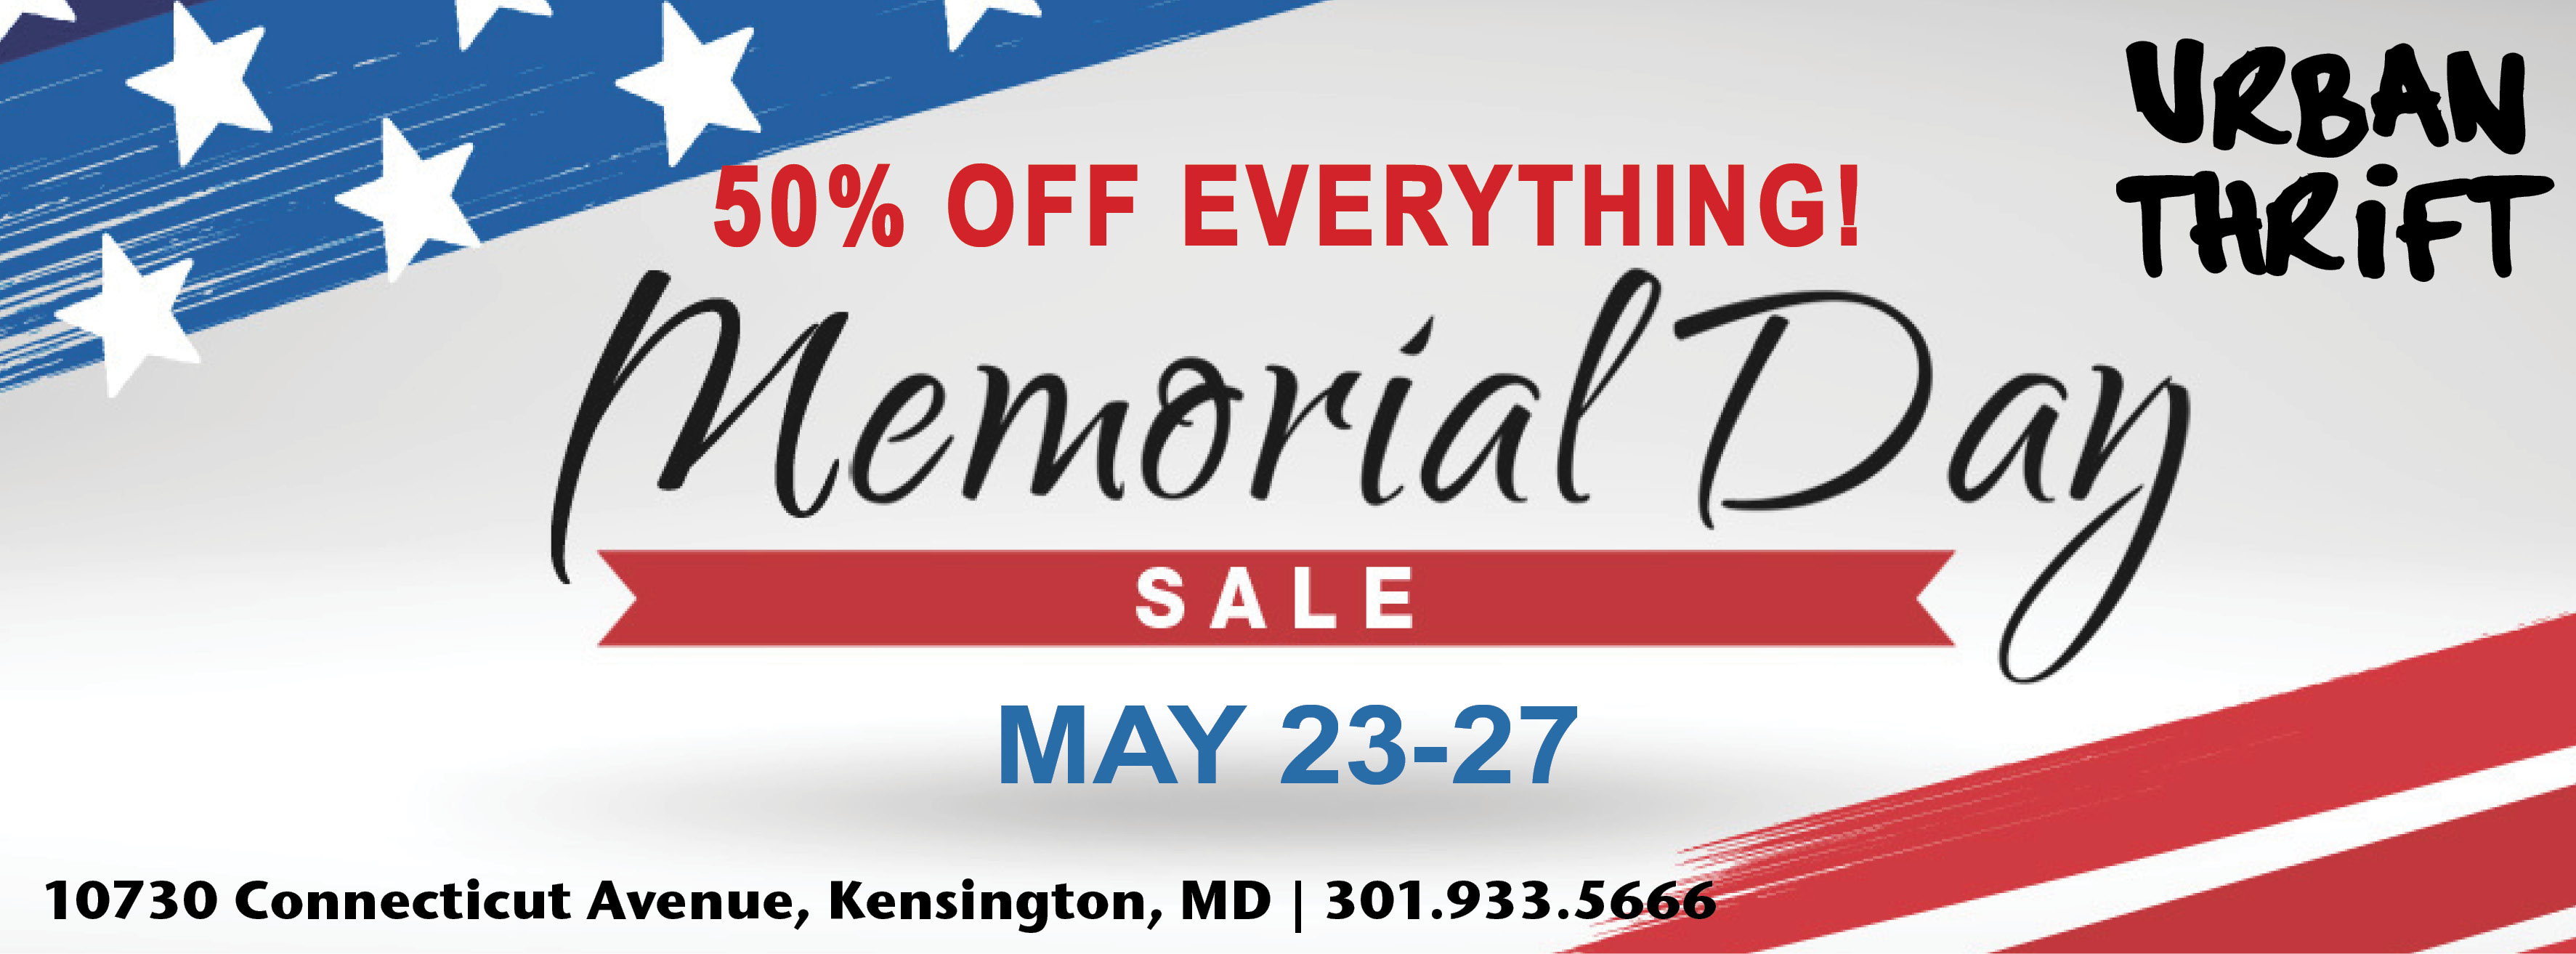 Urban Thrift – Memorial Day Sale